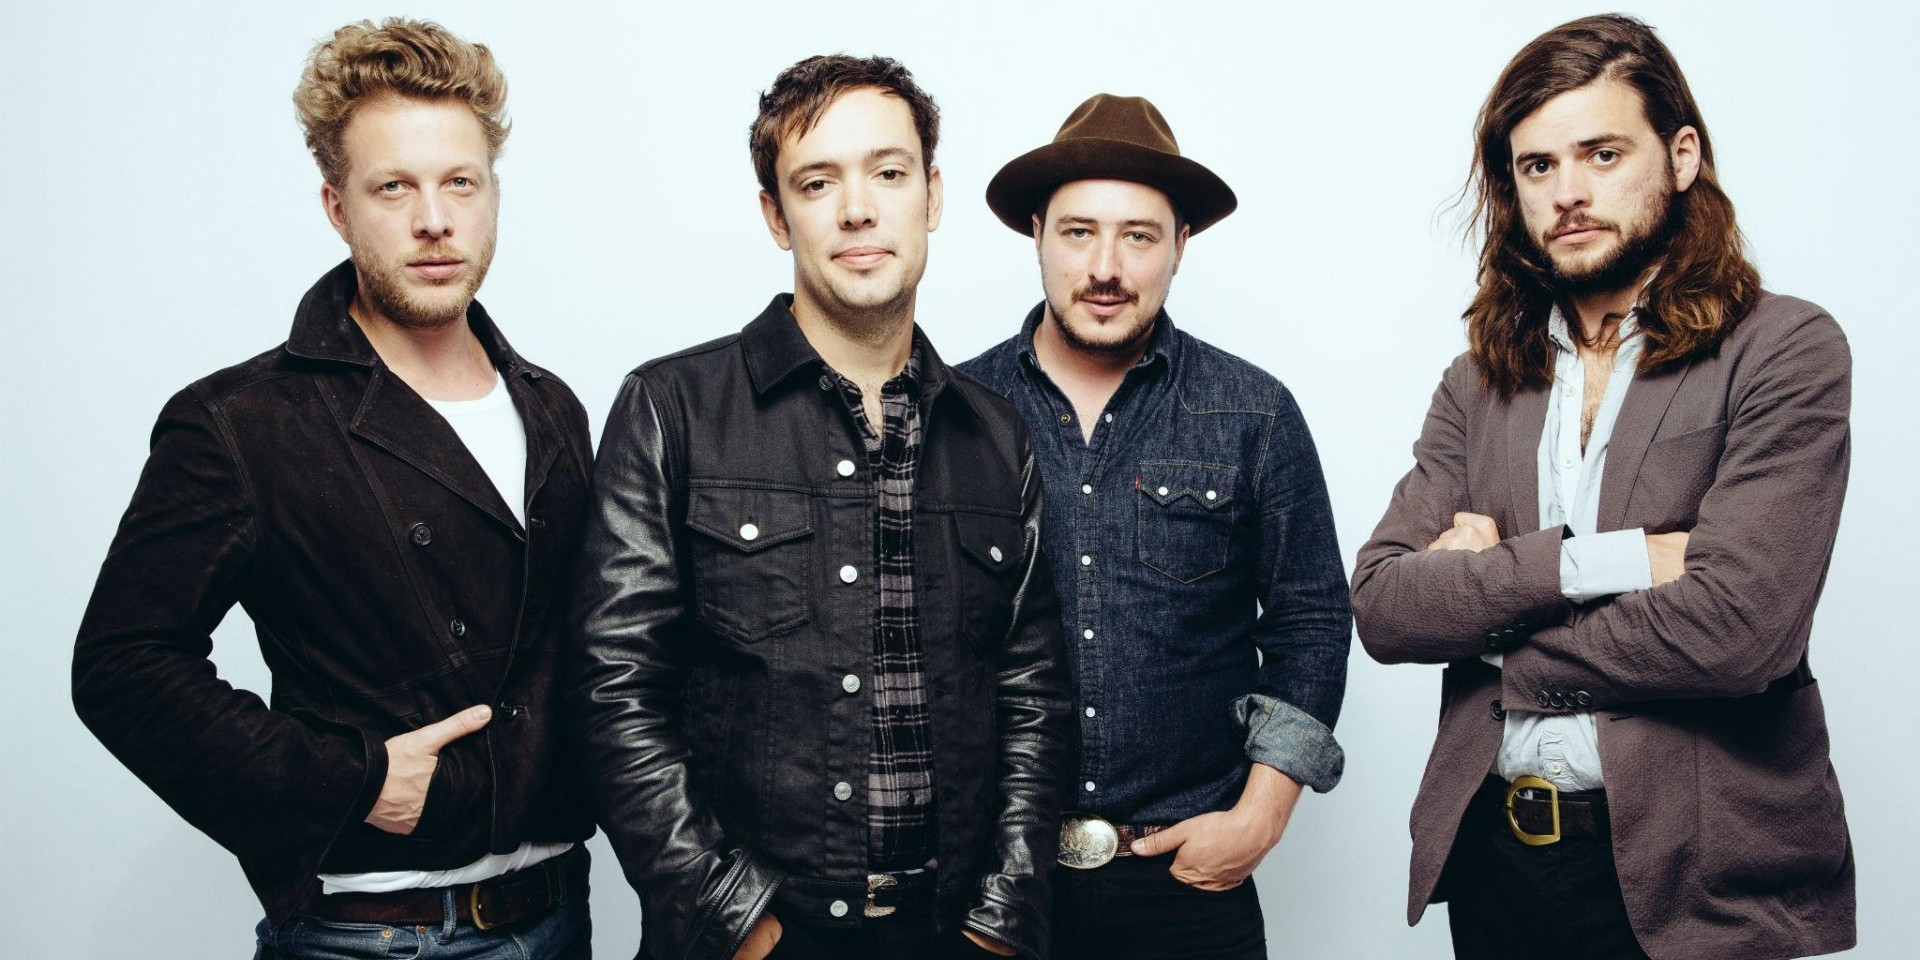 Mumford & Sons grapple with the devastation of death in new music video for 'Beloved' – watch